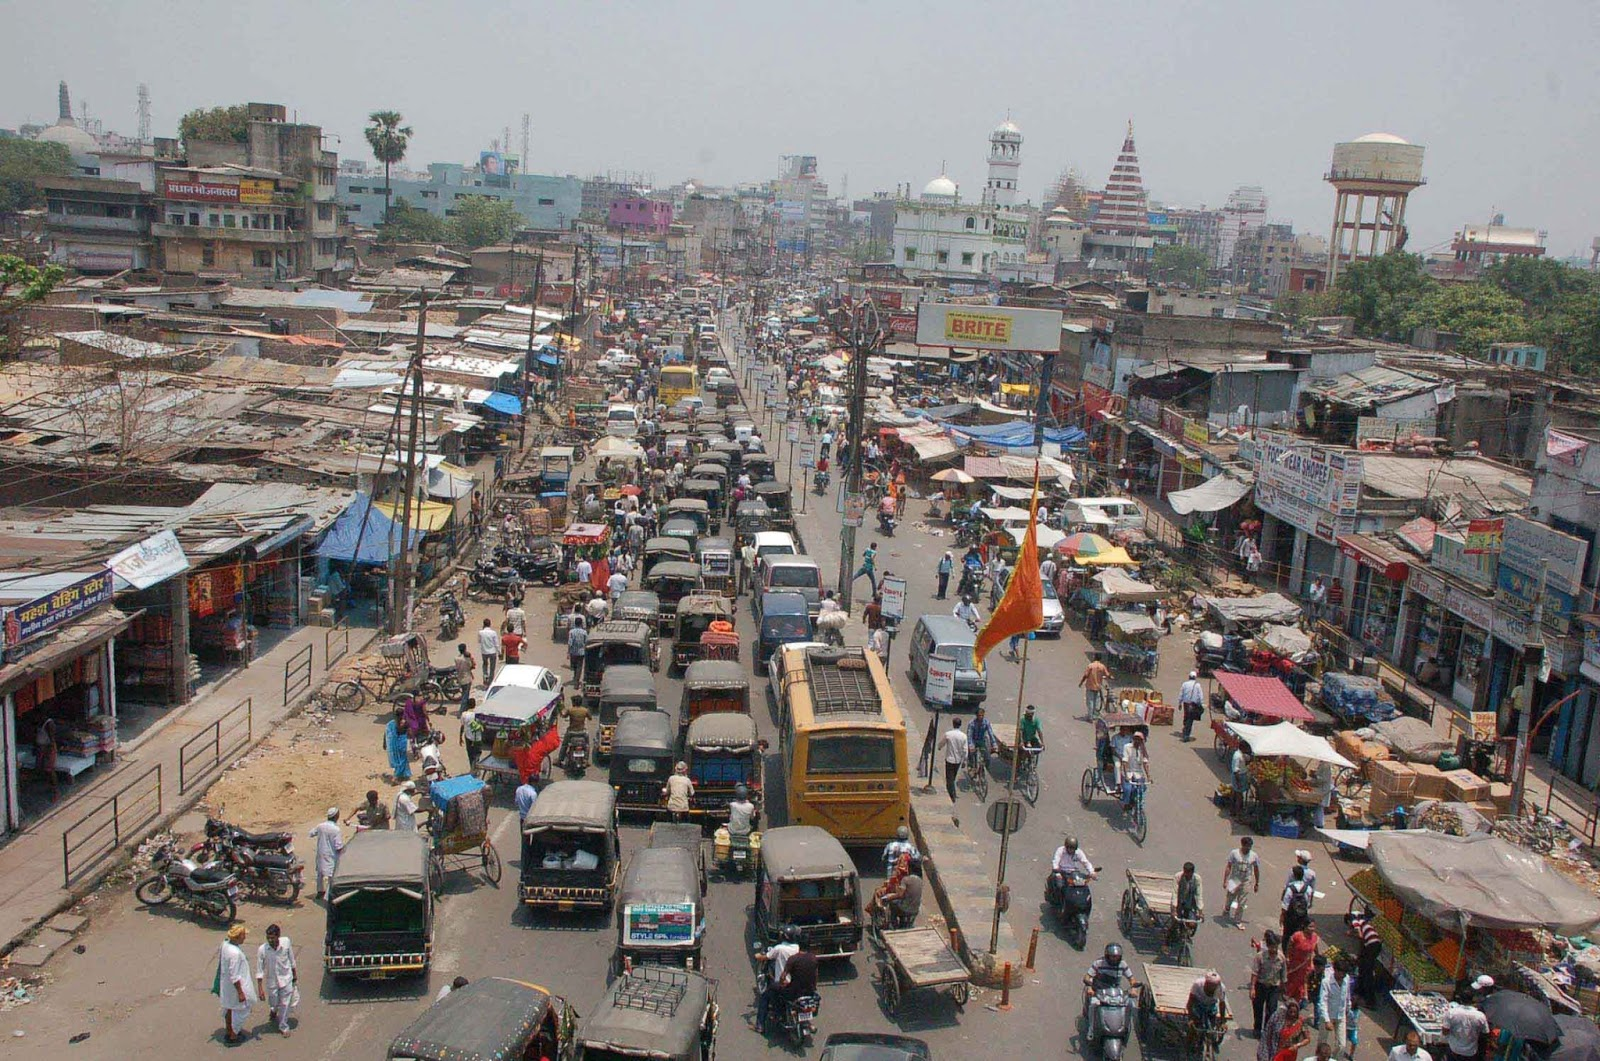 essay on traffic jam Traffic jam is very hard to tell about the causes of jam in dhaka as it does not follow any pattern it is a common practice in dhaka to blame rickshaws as the only reason for creating traffic congestion.